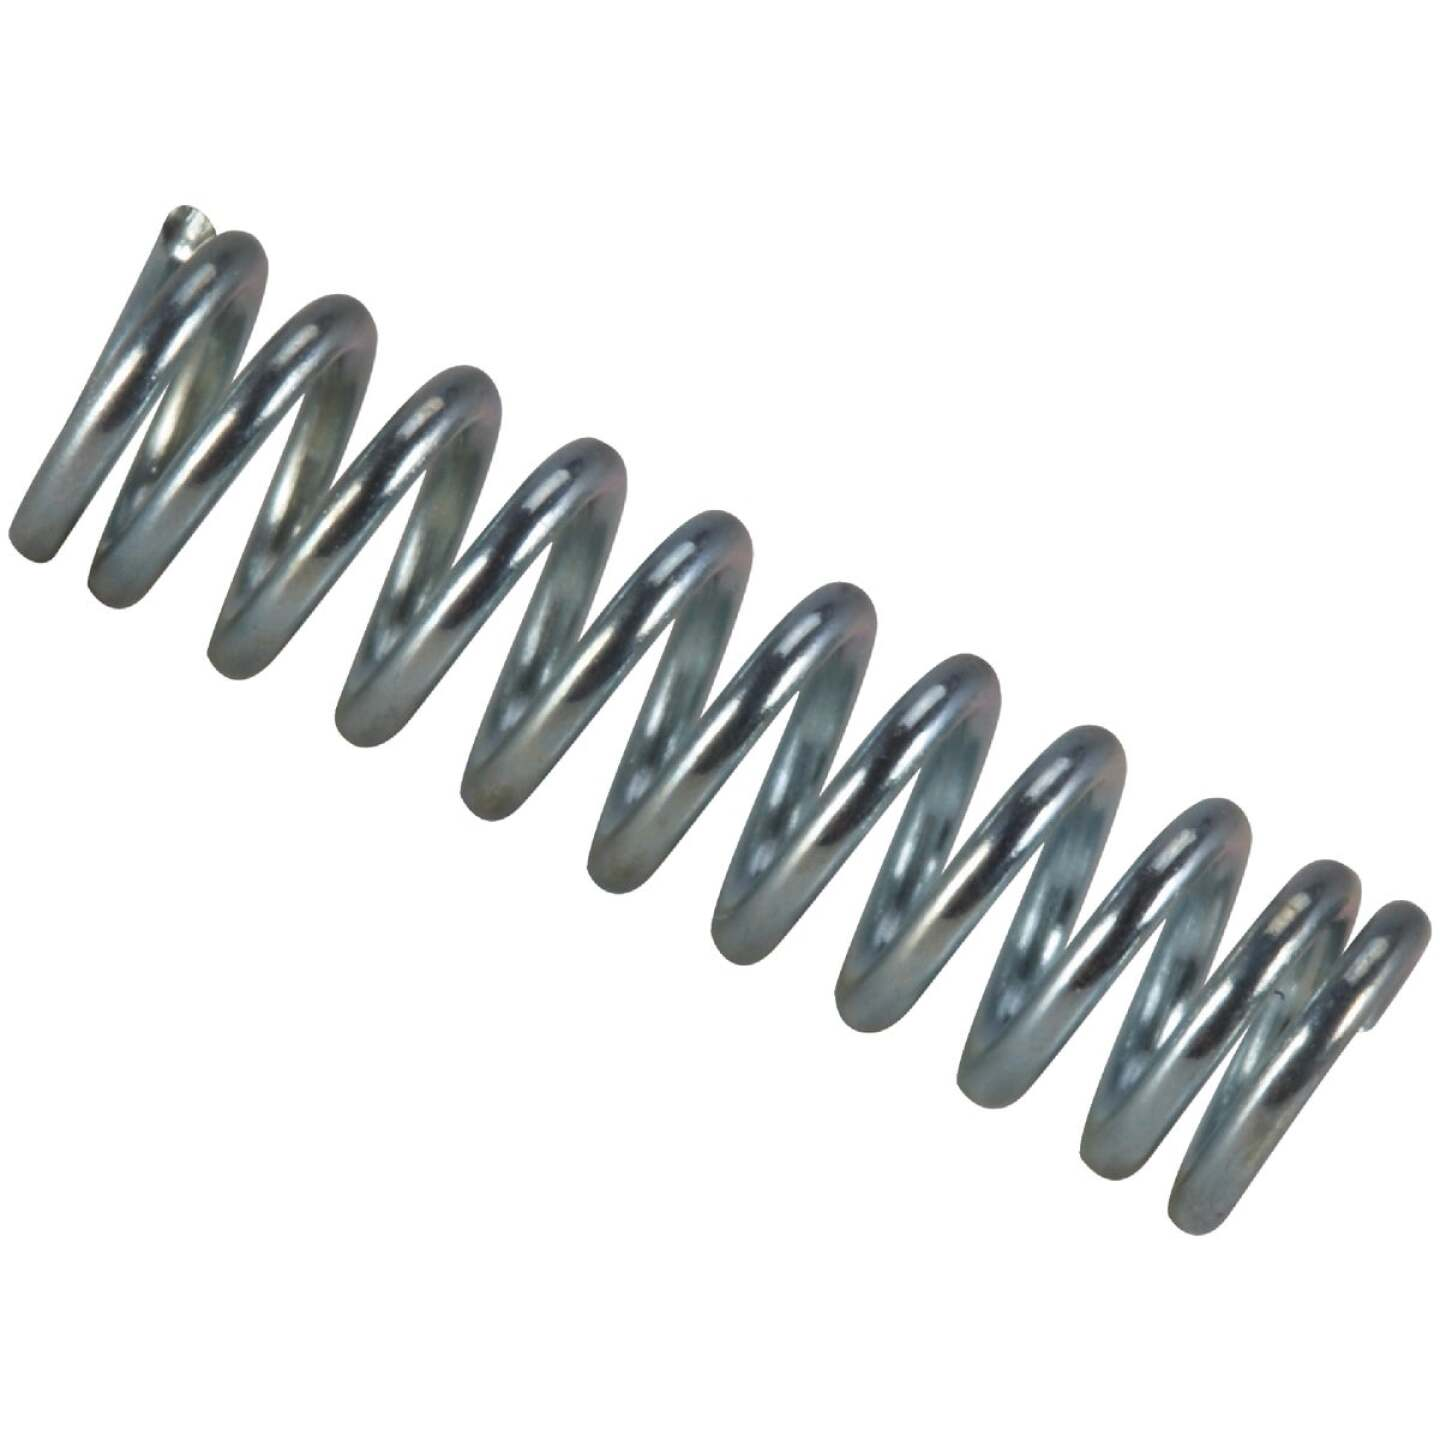 Century Spring 3 In. x 9/16 In. Compression Spring (2 Count) Image 1